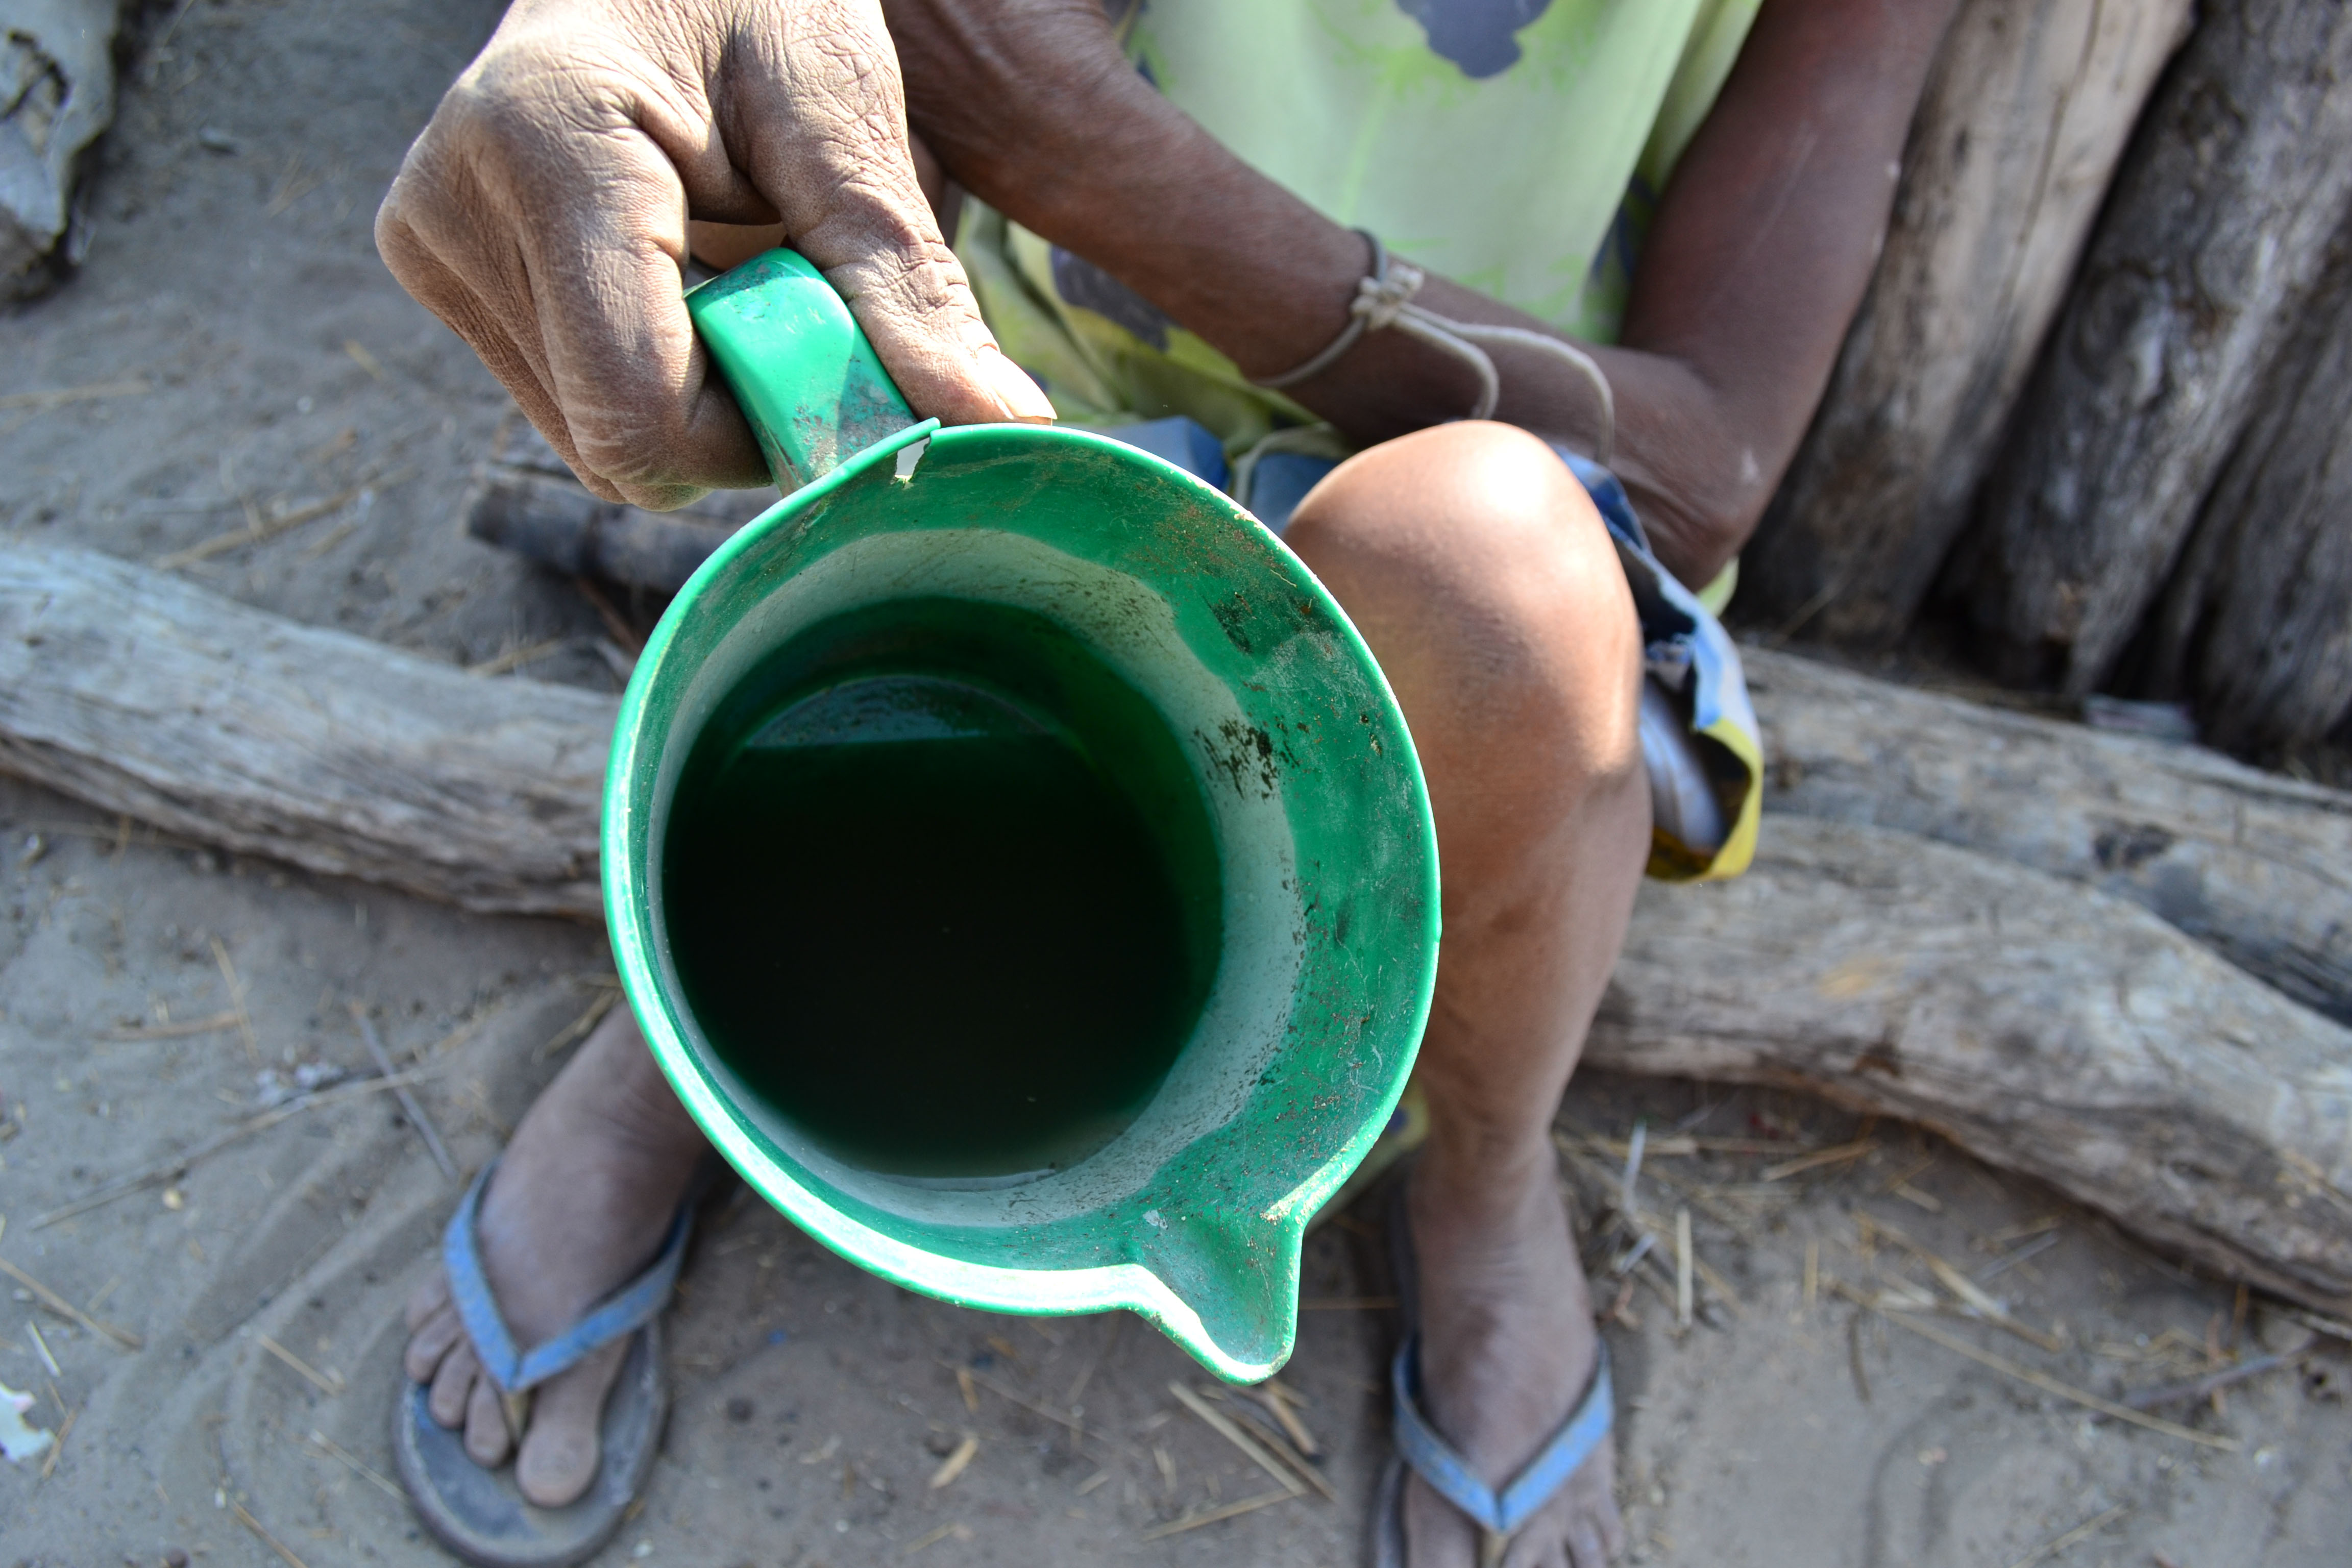 Victoria Nditondino holds up a jug of the dirty, brown water that her grandchildren have drawn from a distant well in southern Angola's Cunene Province. Lack of rain caused the nearby well to dry up months ago